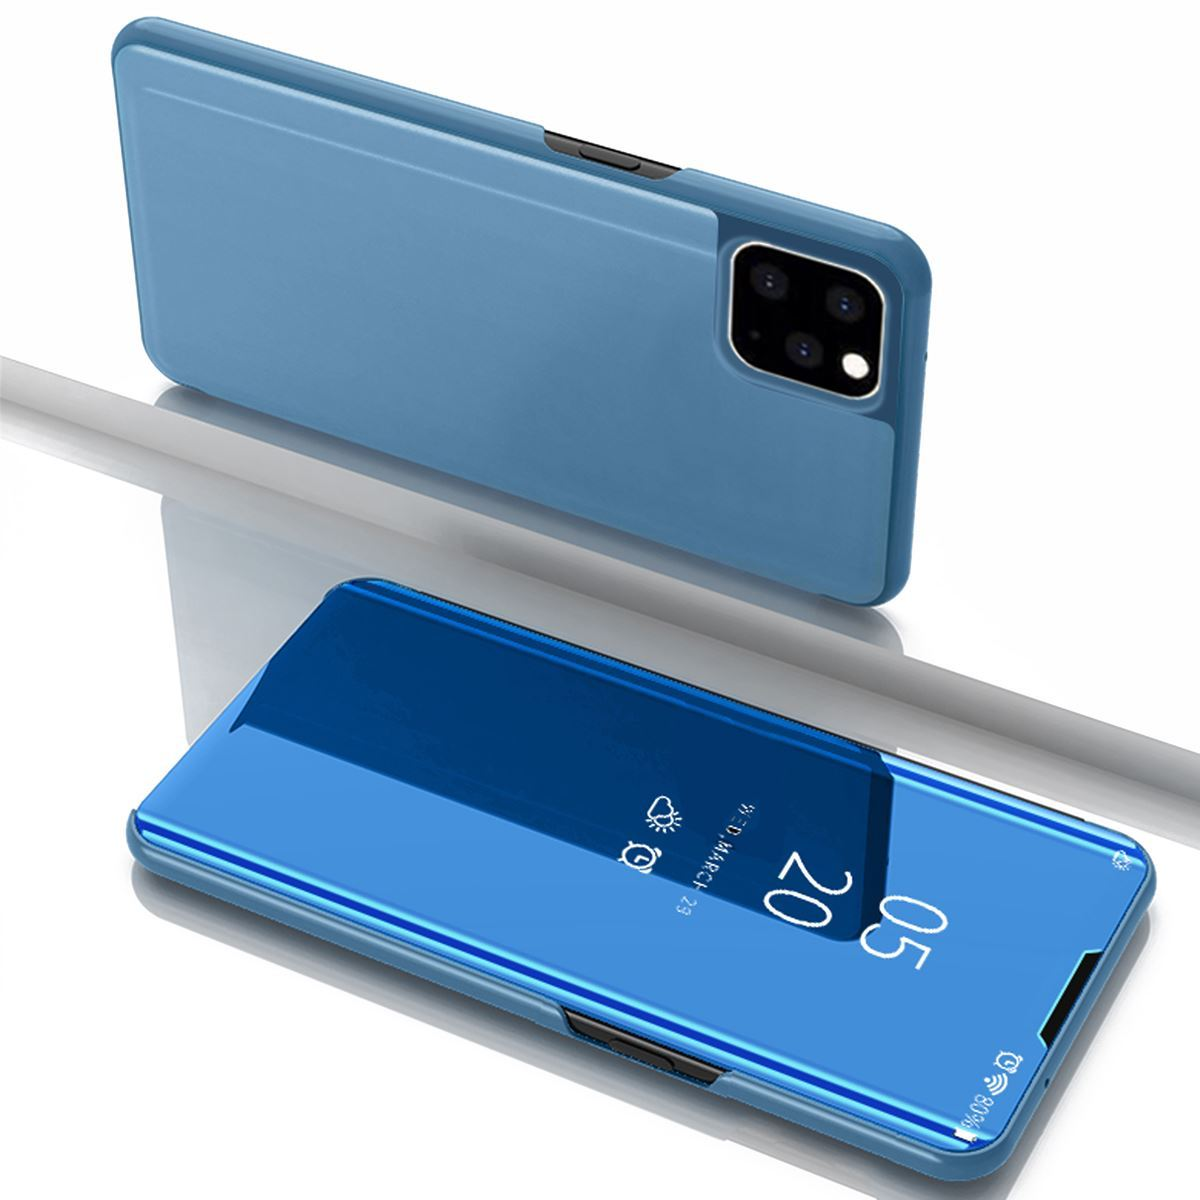 iPhone 11 Case Flip Stand Mirror Cover - Blue